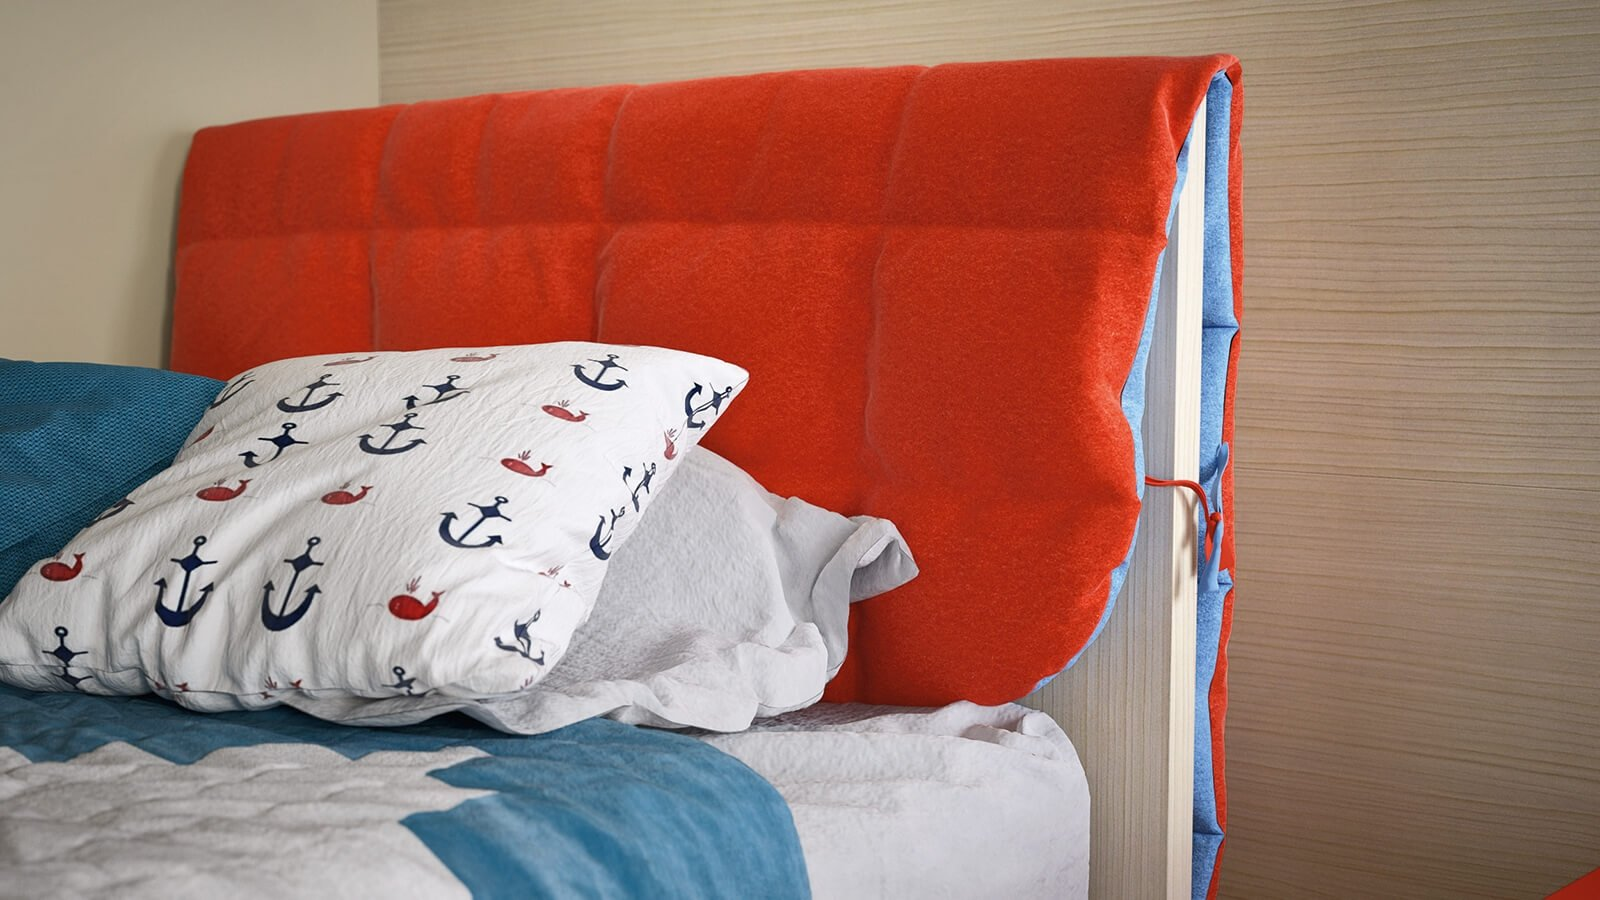 Headboard covers